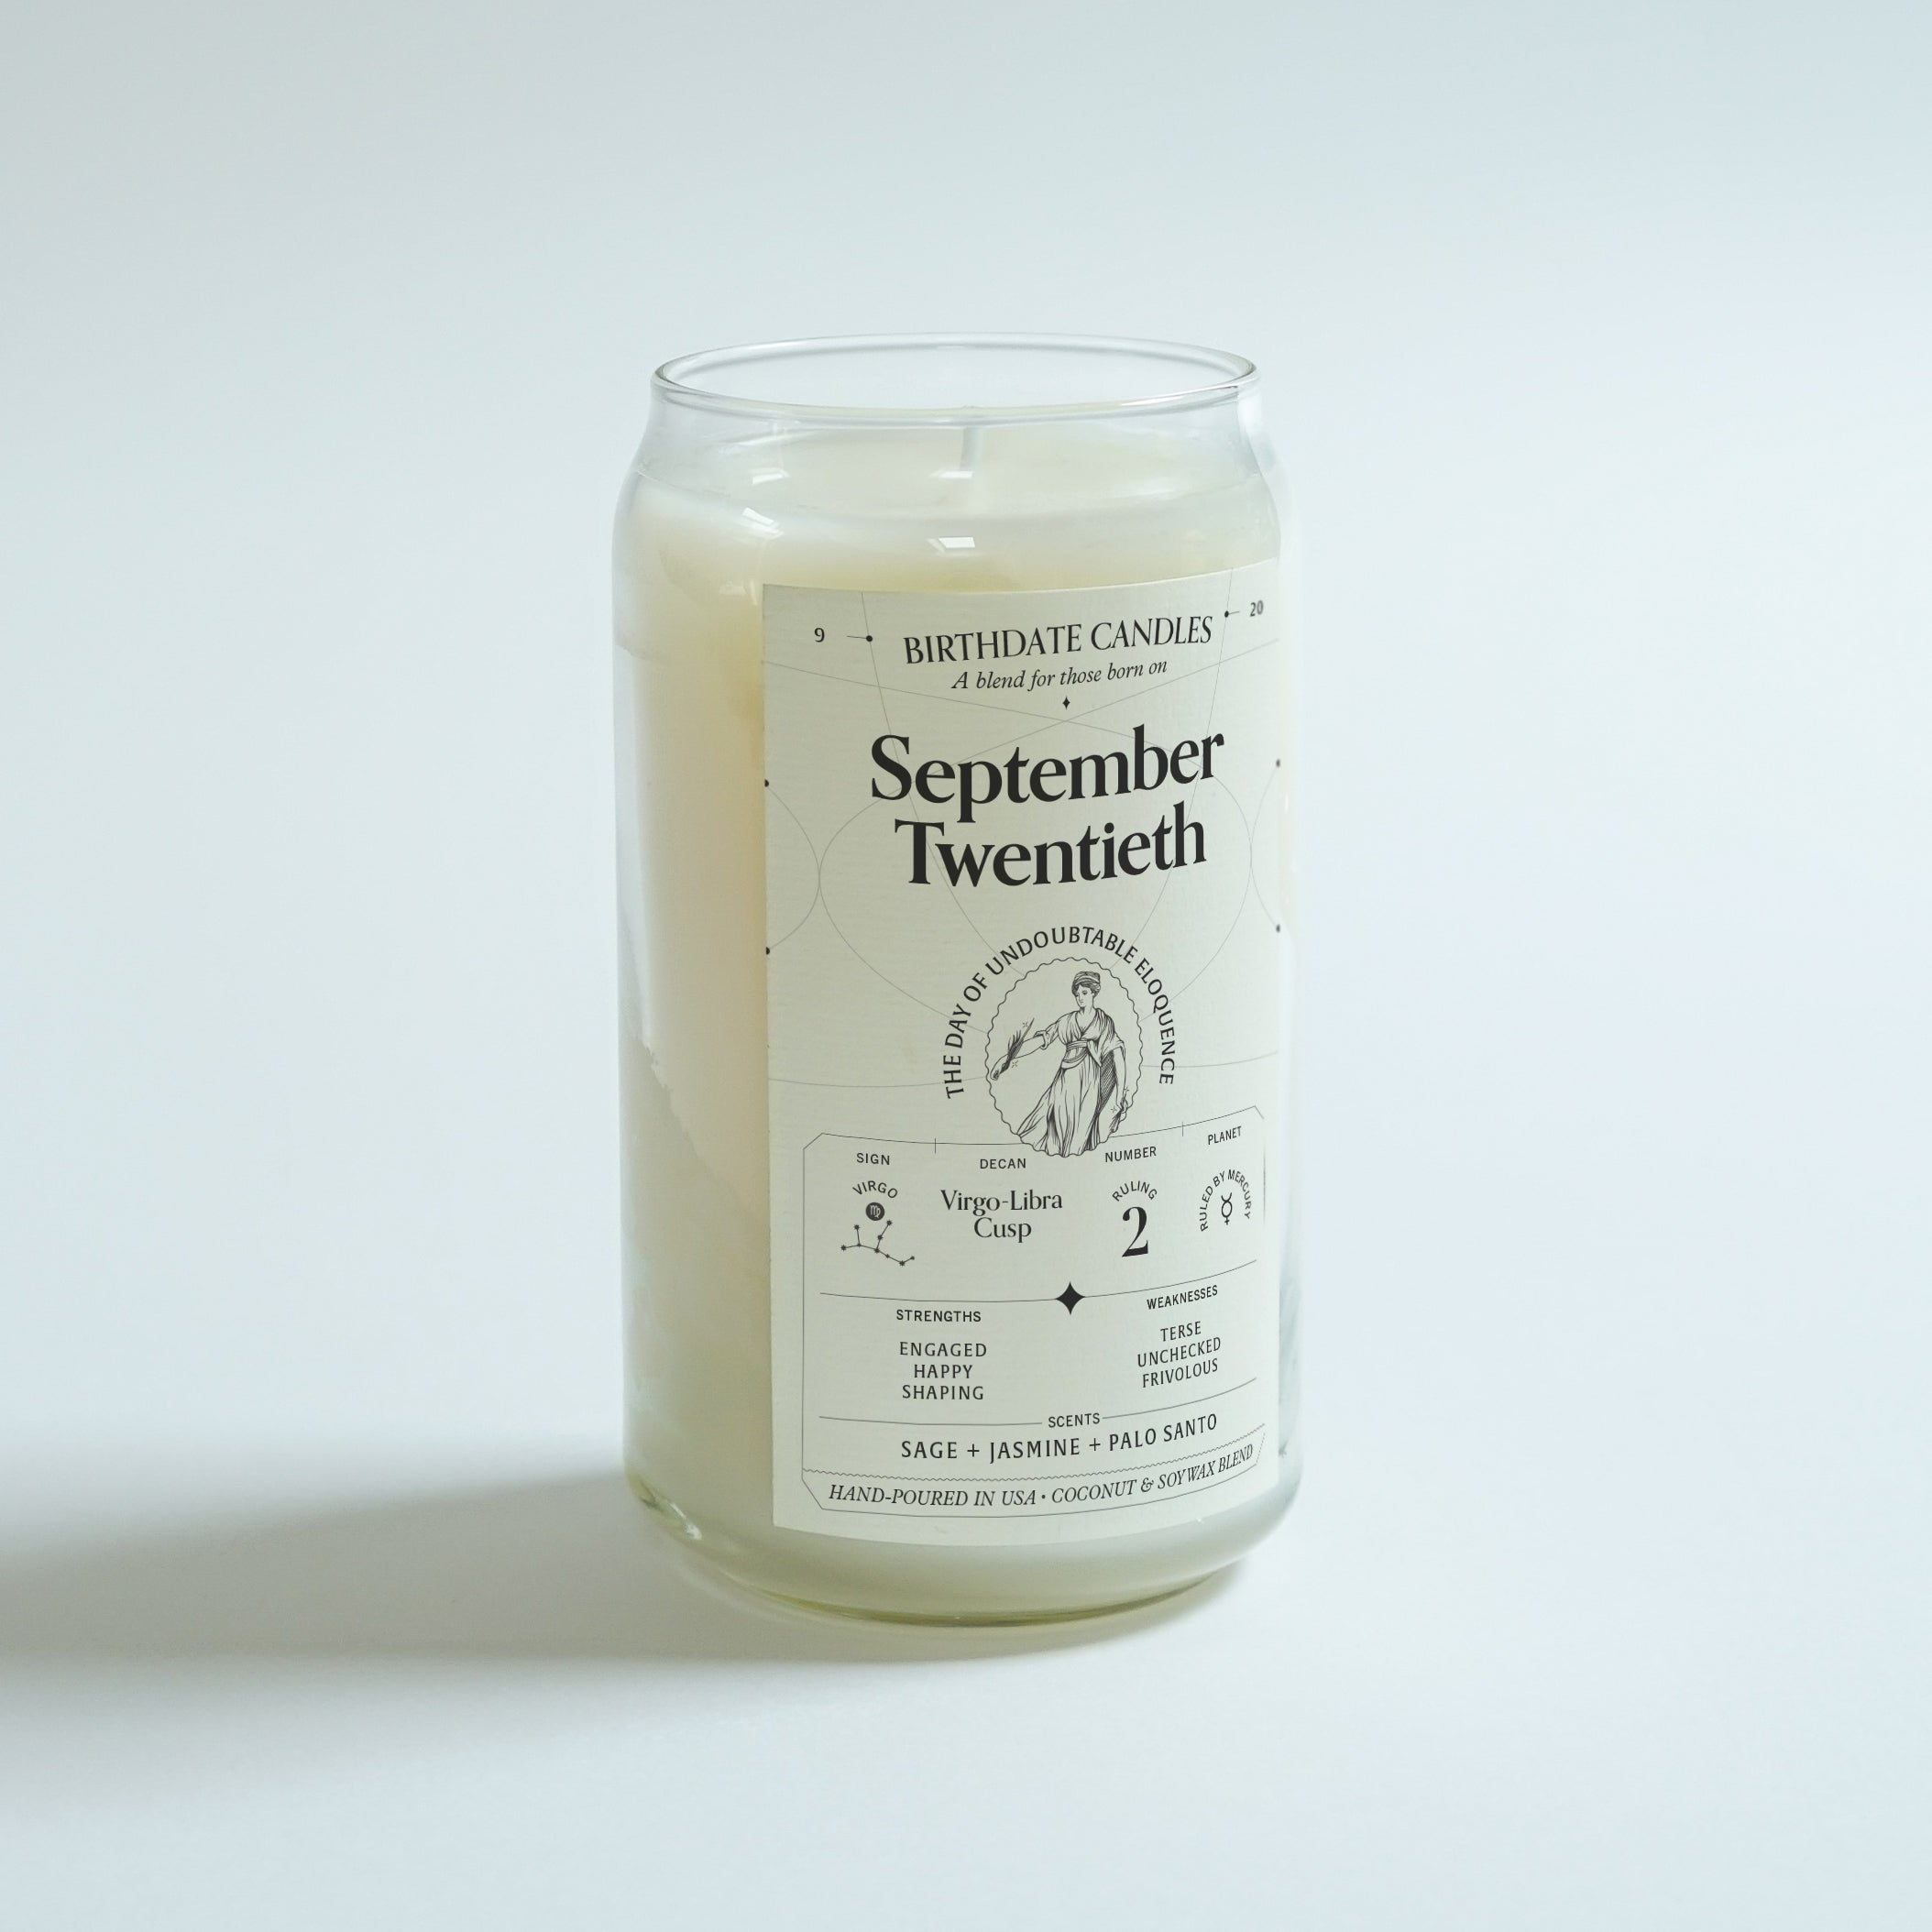 The September Twentieth Candle